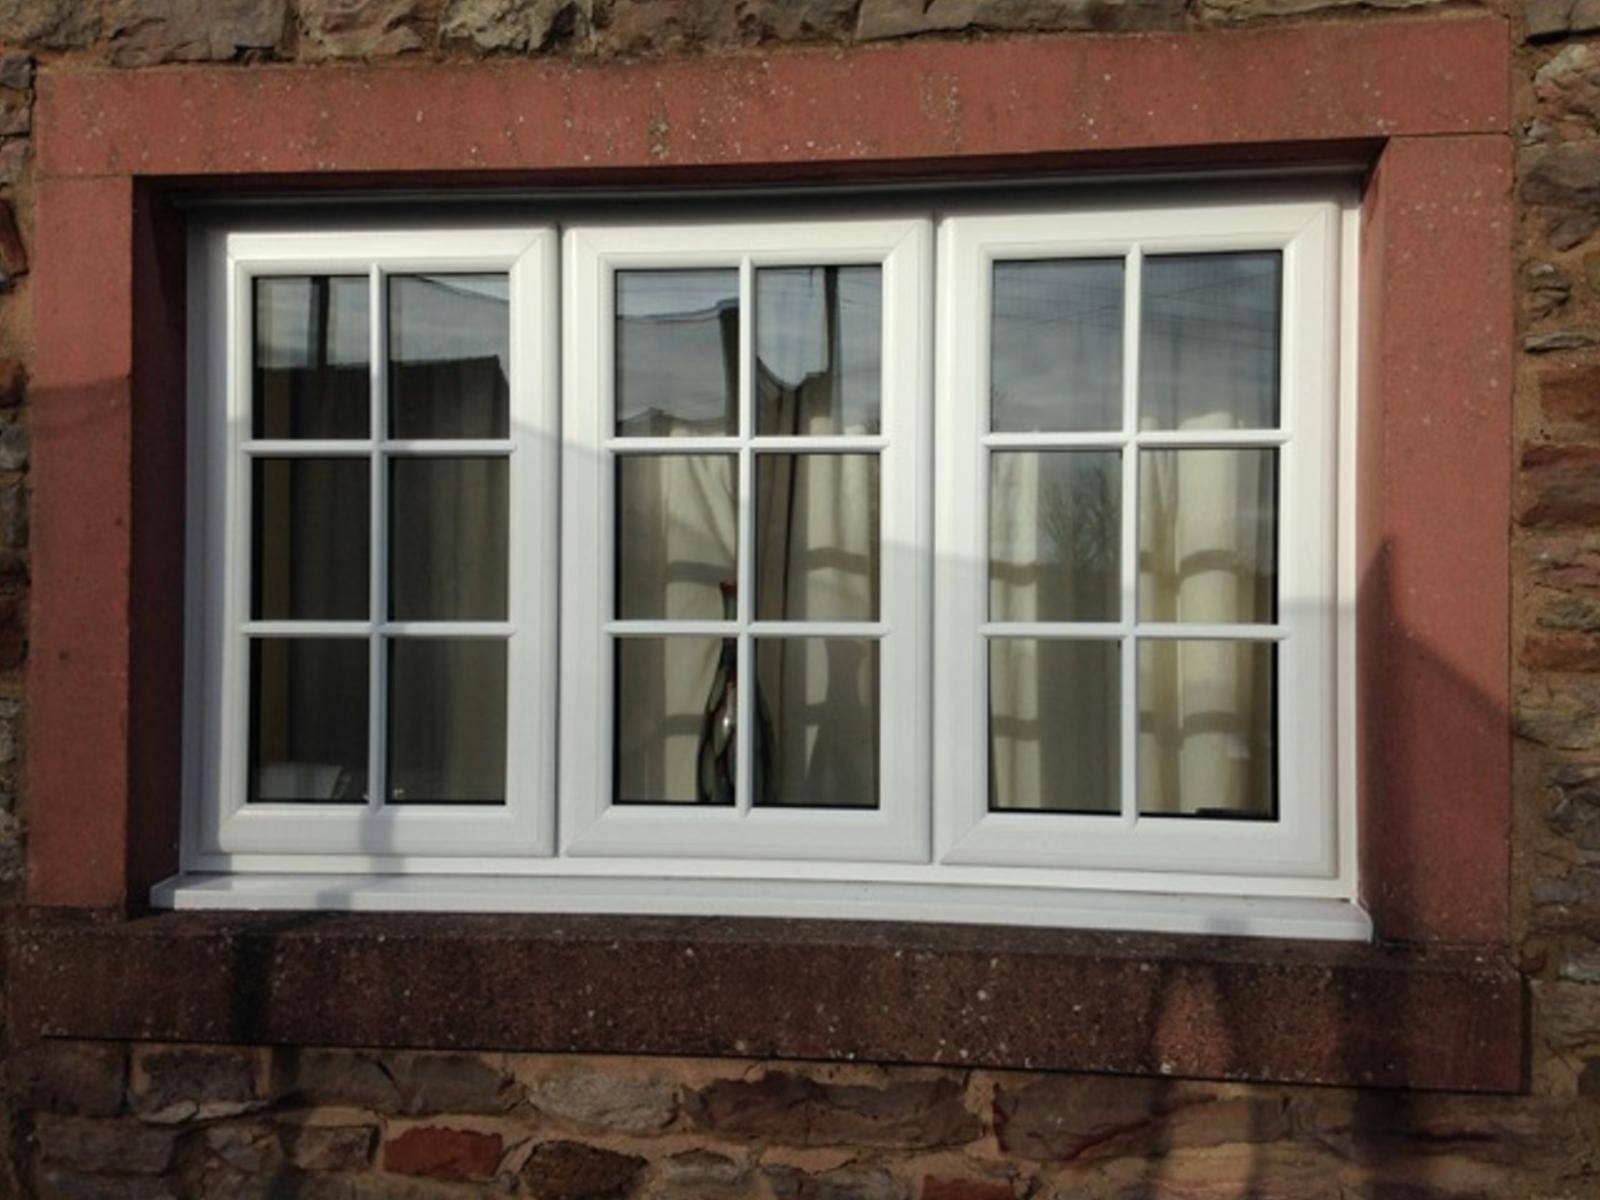 White PVC window - equal glass sizes with central dummy sash and 2 side openers - glazed with face-fix bars